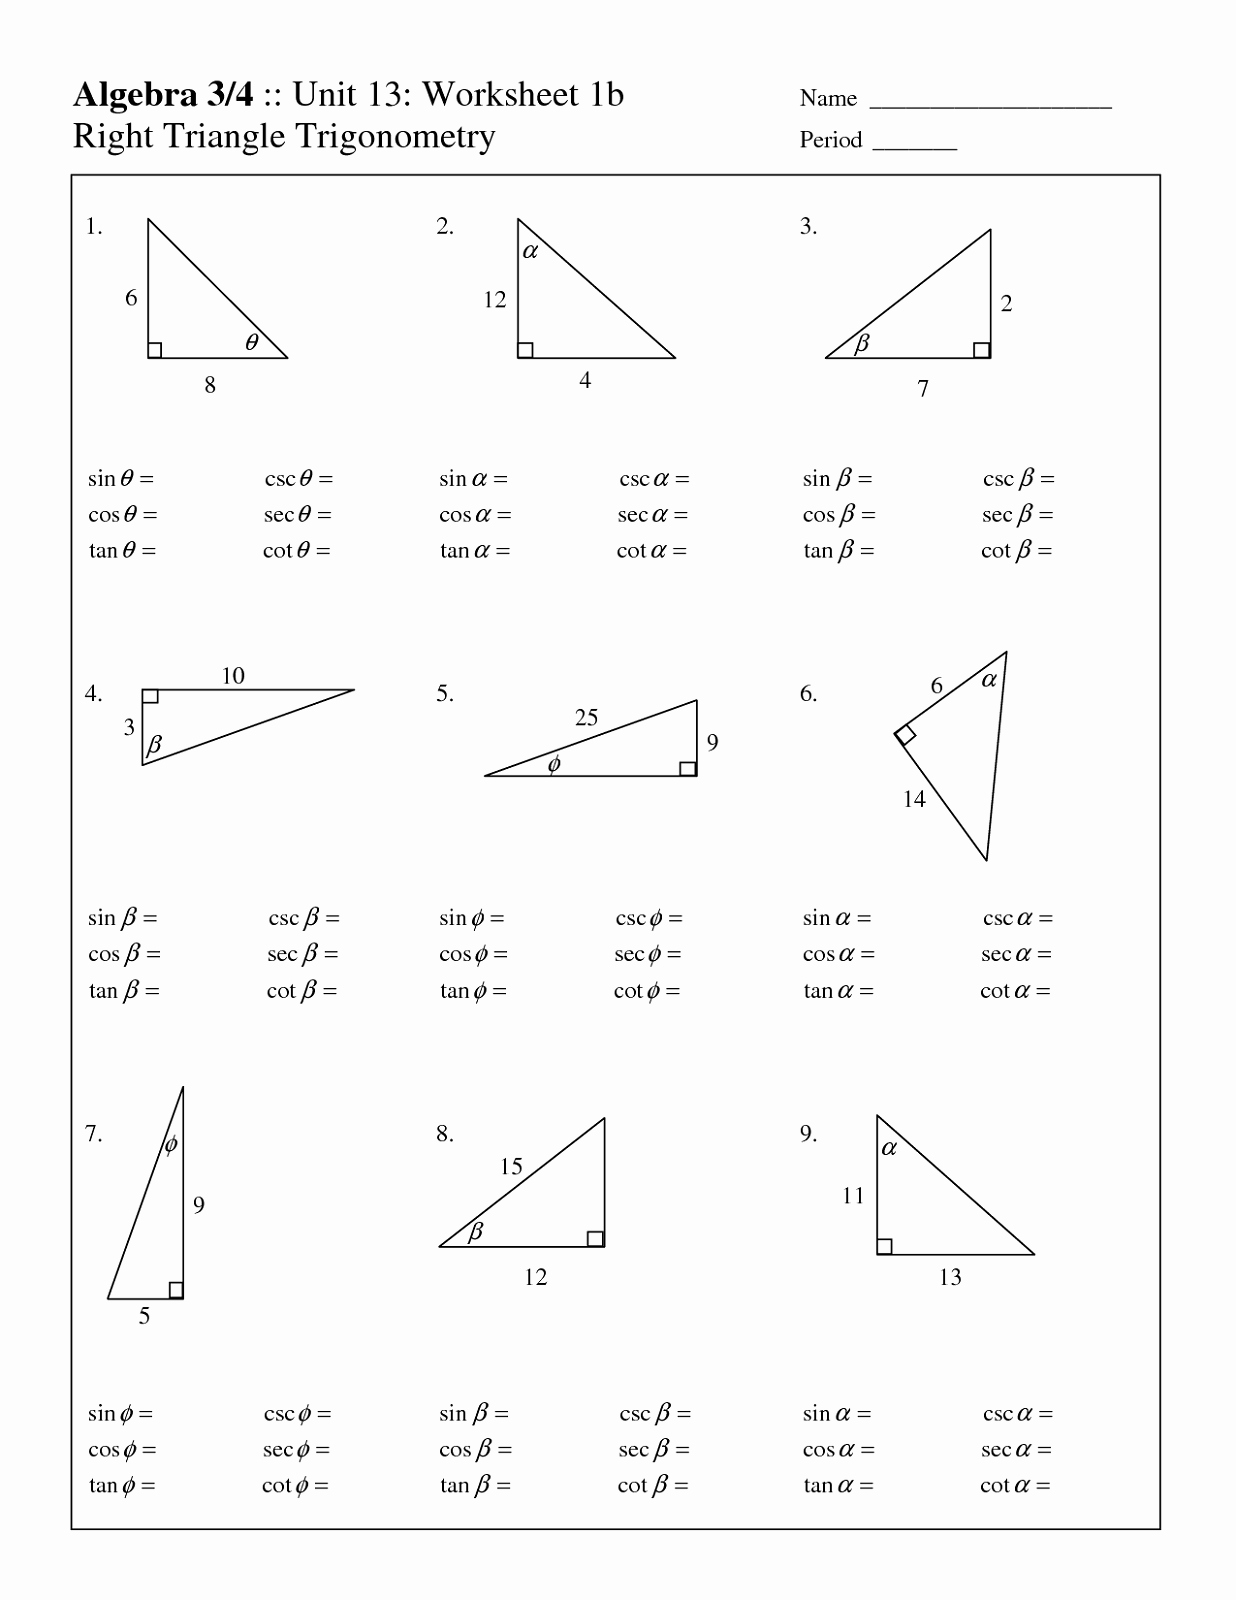 Right Triangle Trig Worksheet Answers Beautiful Free Fact Triangles Worksheets